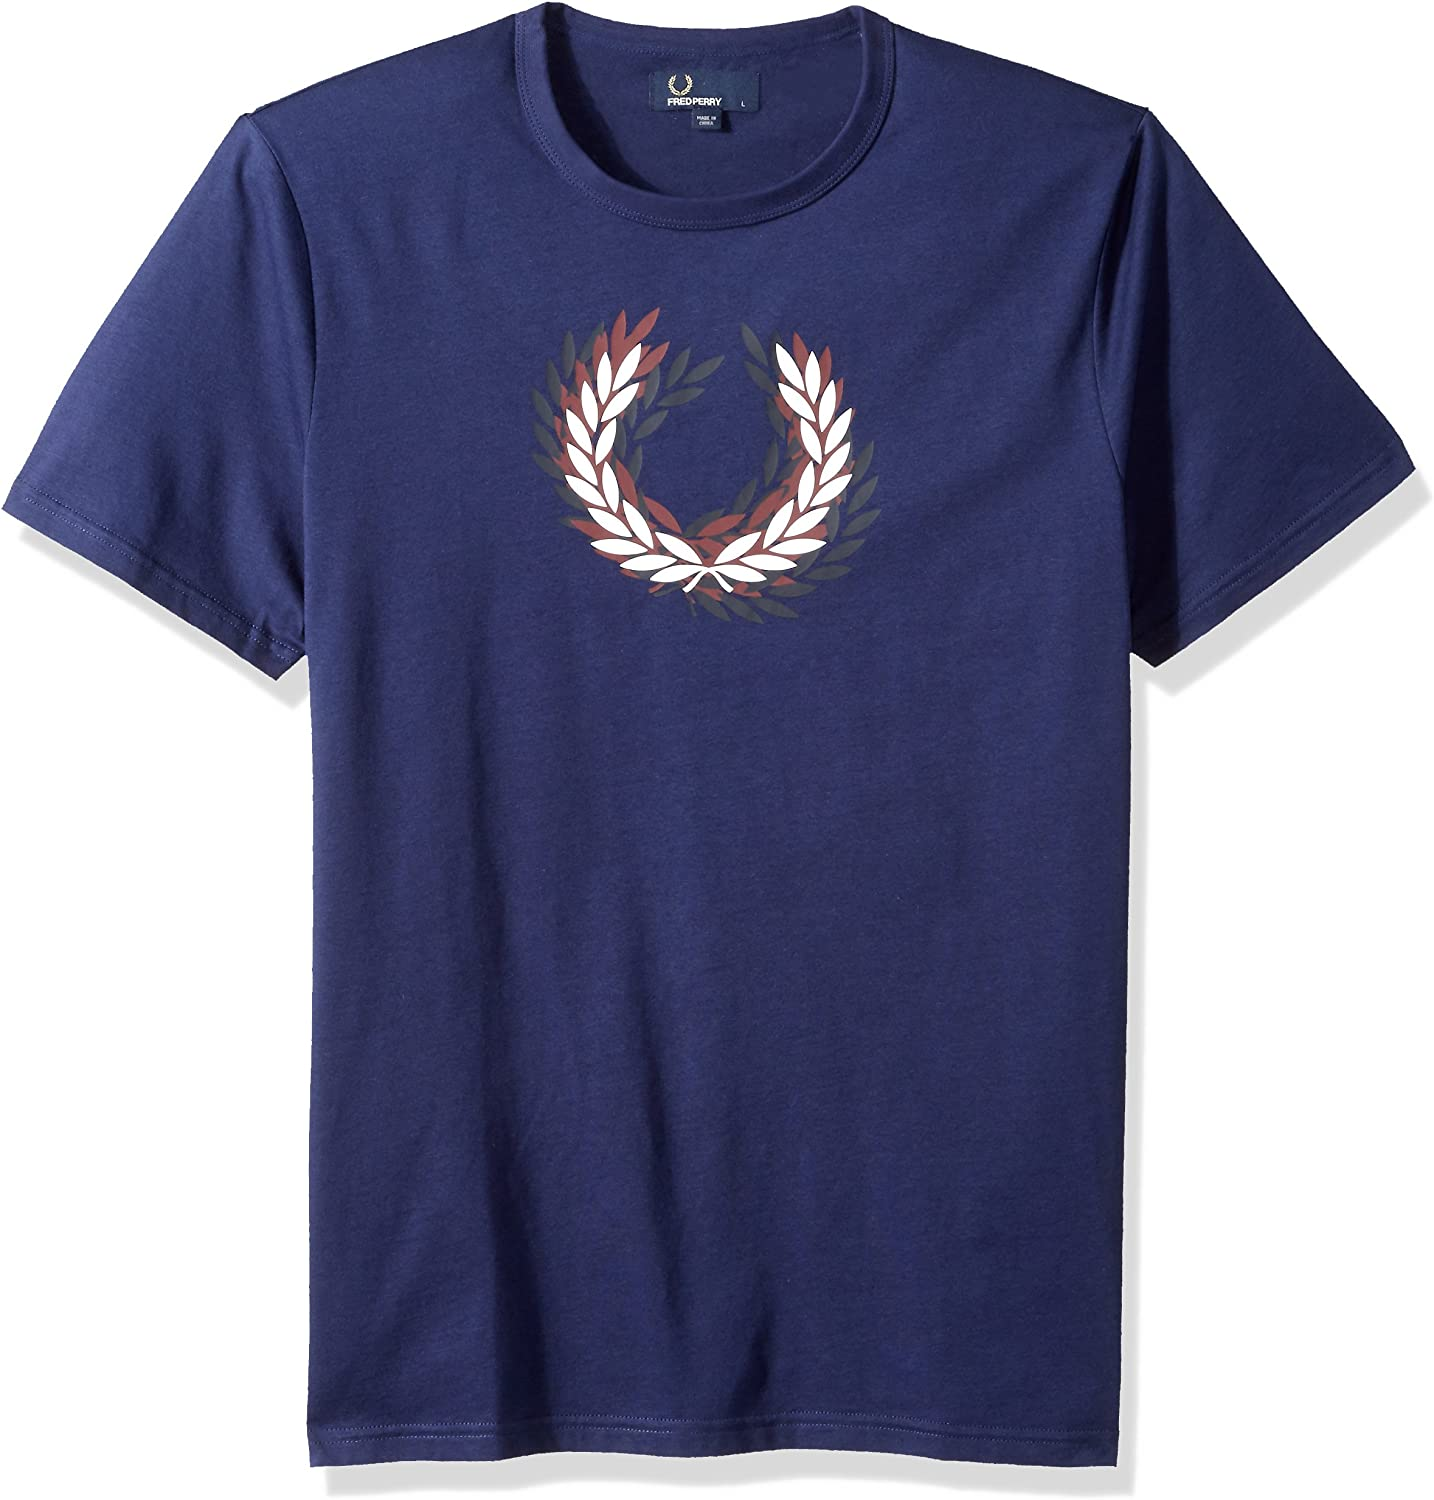 Fred Perry Distorted Laurelwreath T-Shirt French Navy, Camiseta